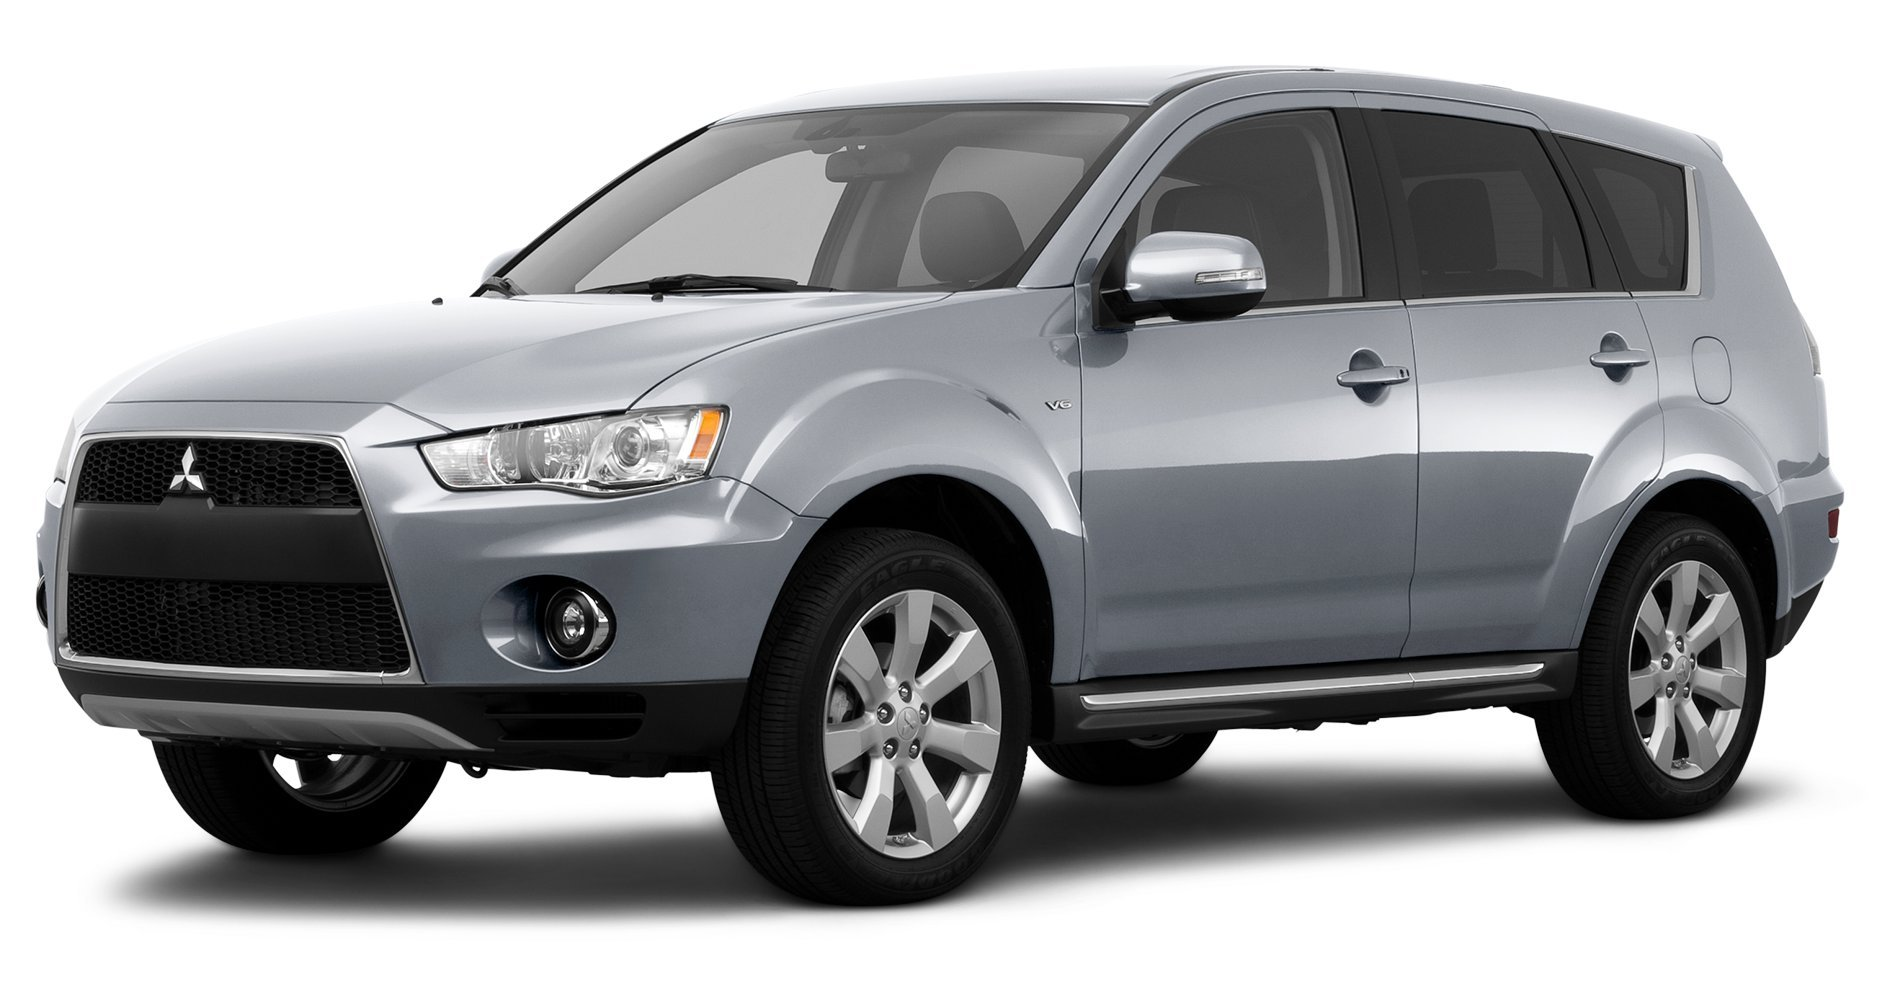 2011 Toyota Highlander Reviews Images And Specs Vehicles Complete Electrical Wiring Diagram For 1942 Chevrolet Passenger Car Mitsubishi Outlander Gt 4 Wheel Drive Door